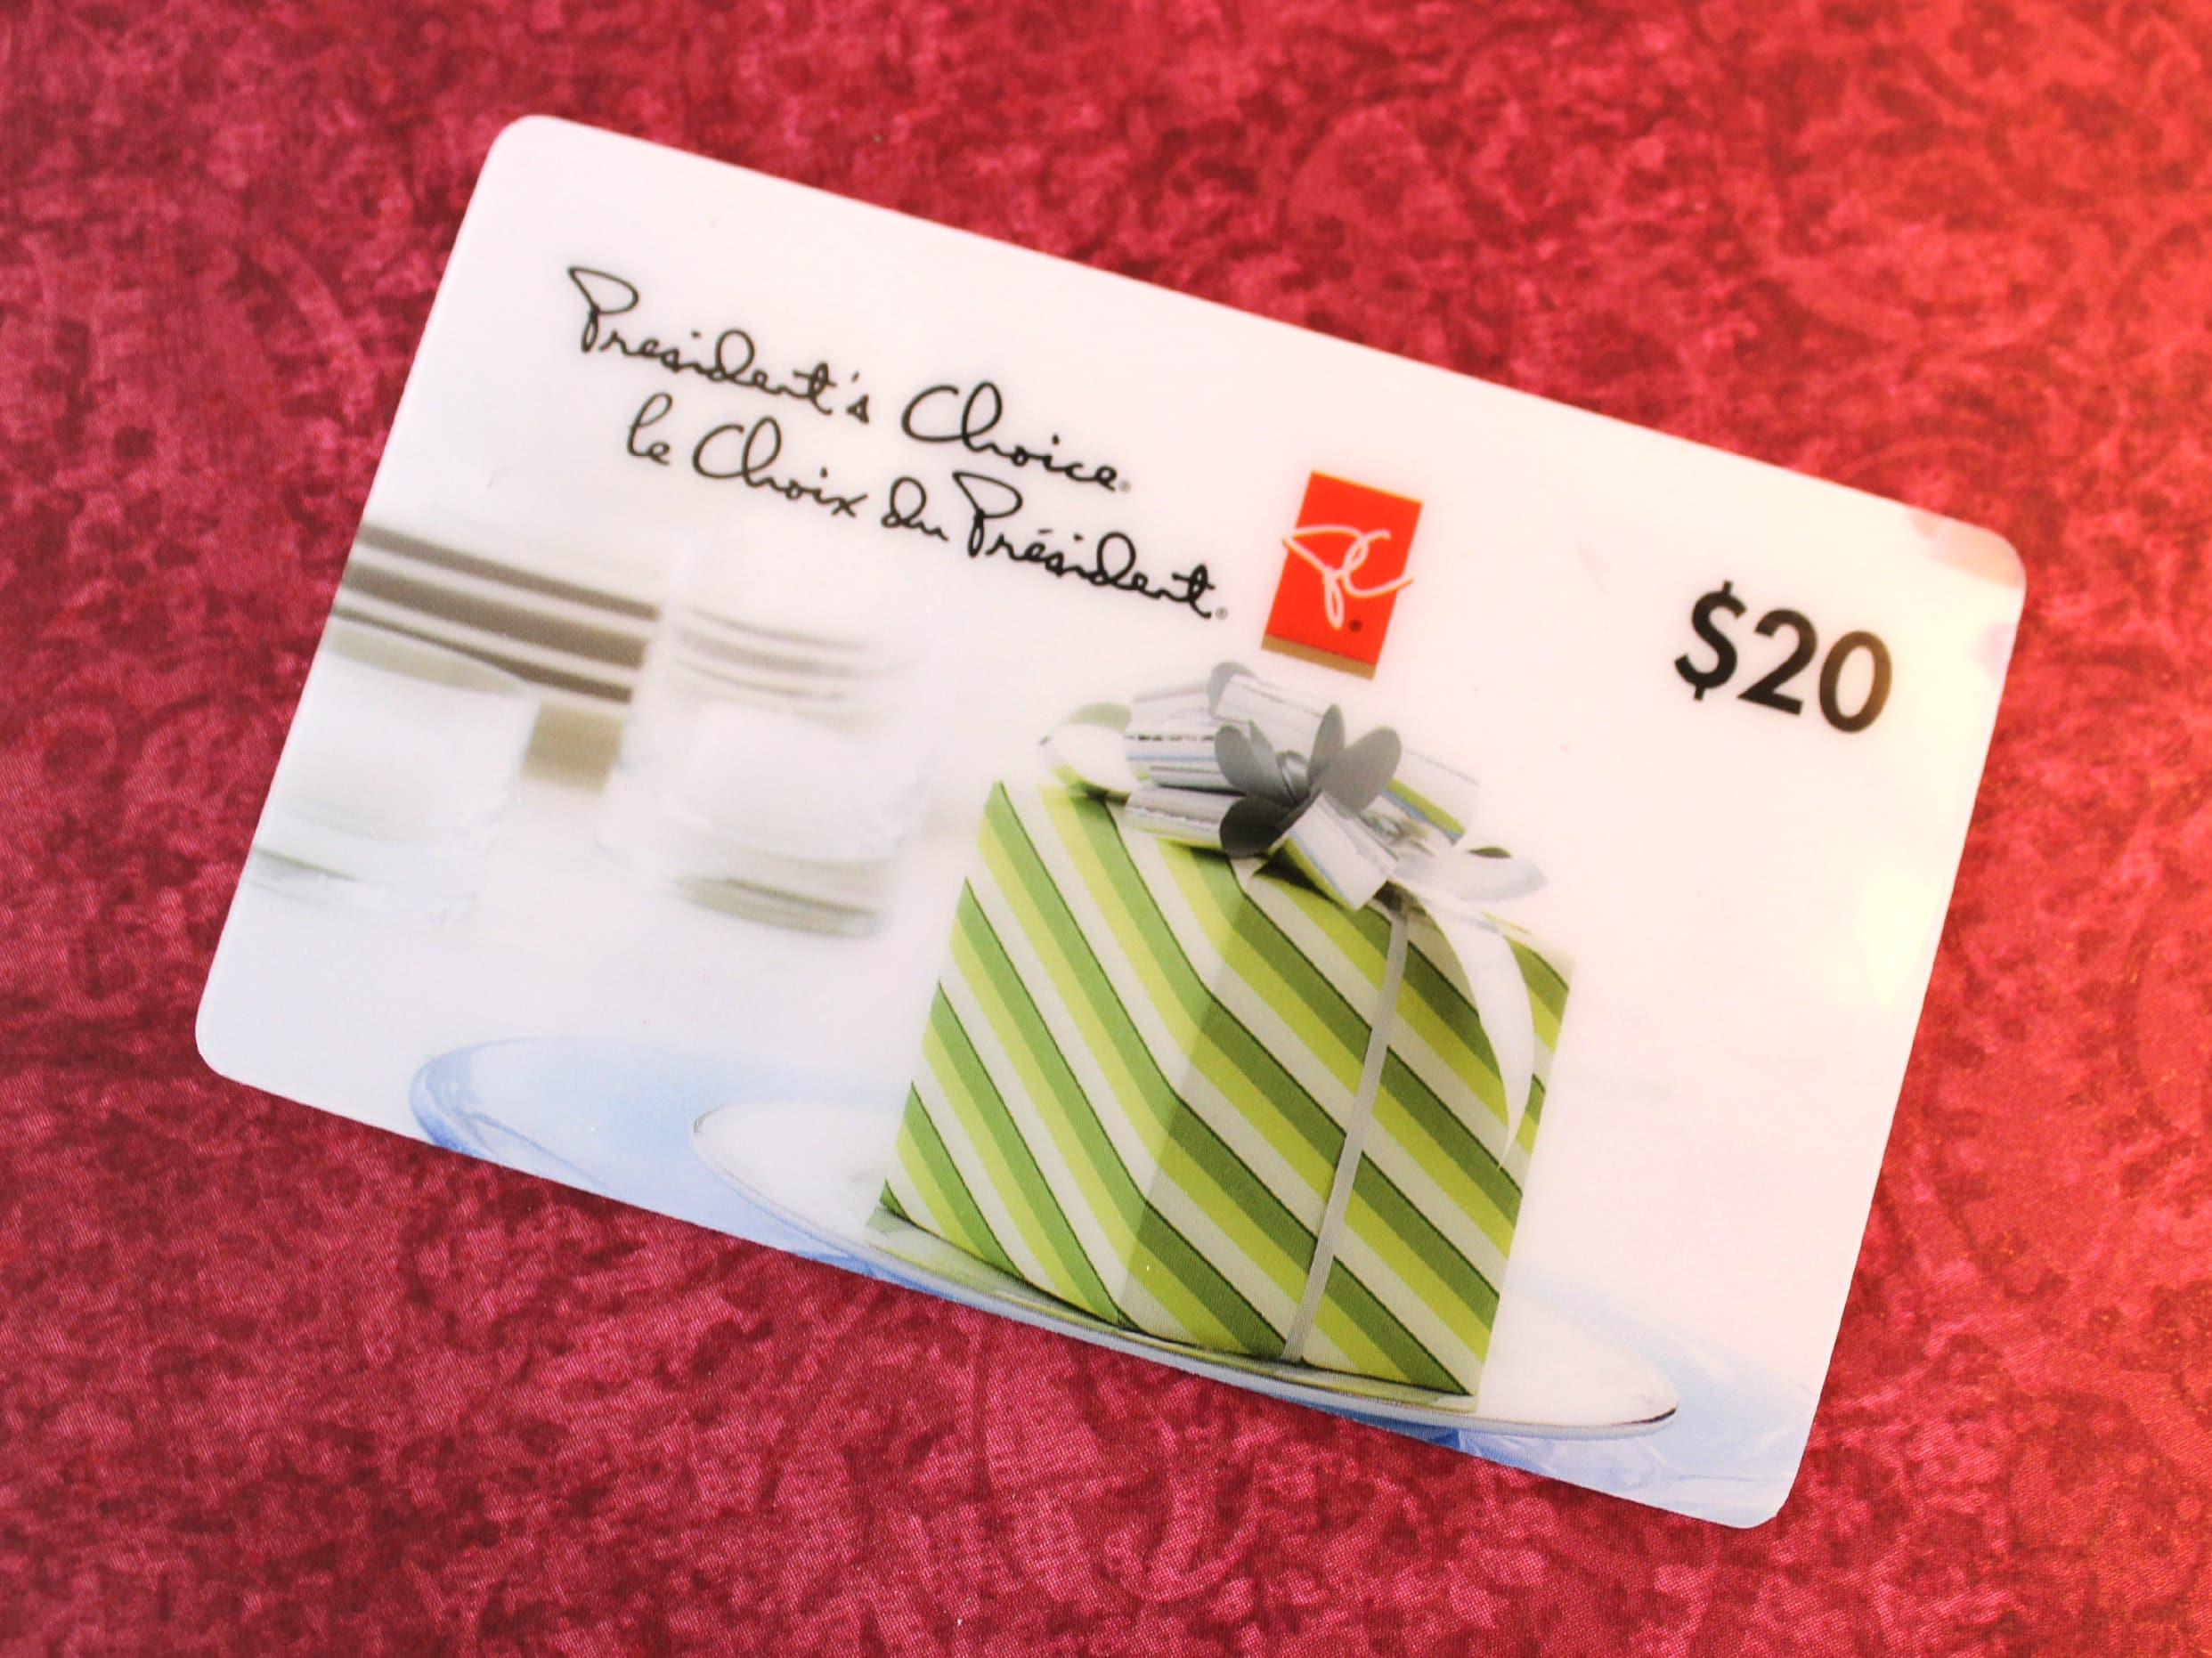 Check Presidents Choice Gift Card Balance online, over the phone or in store. Gift card merchant Presidents Choice provides you a gift card balance check, the information is below for this gift card .